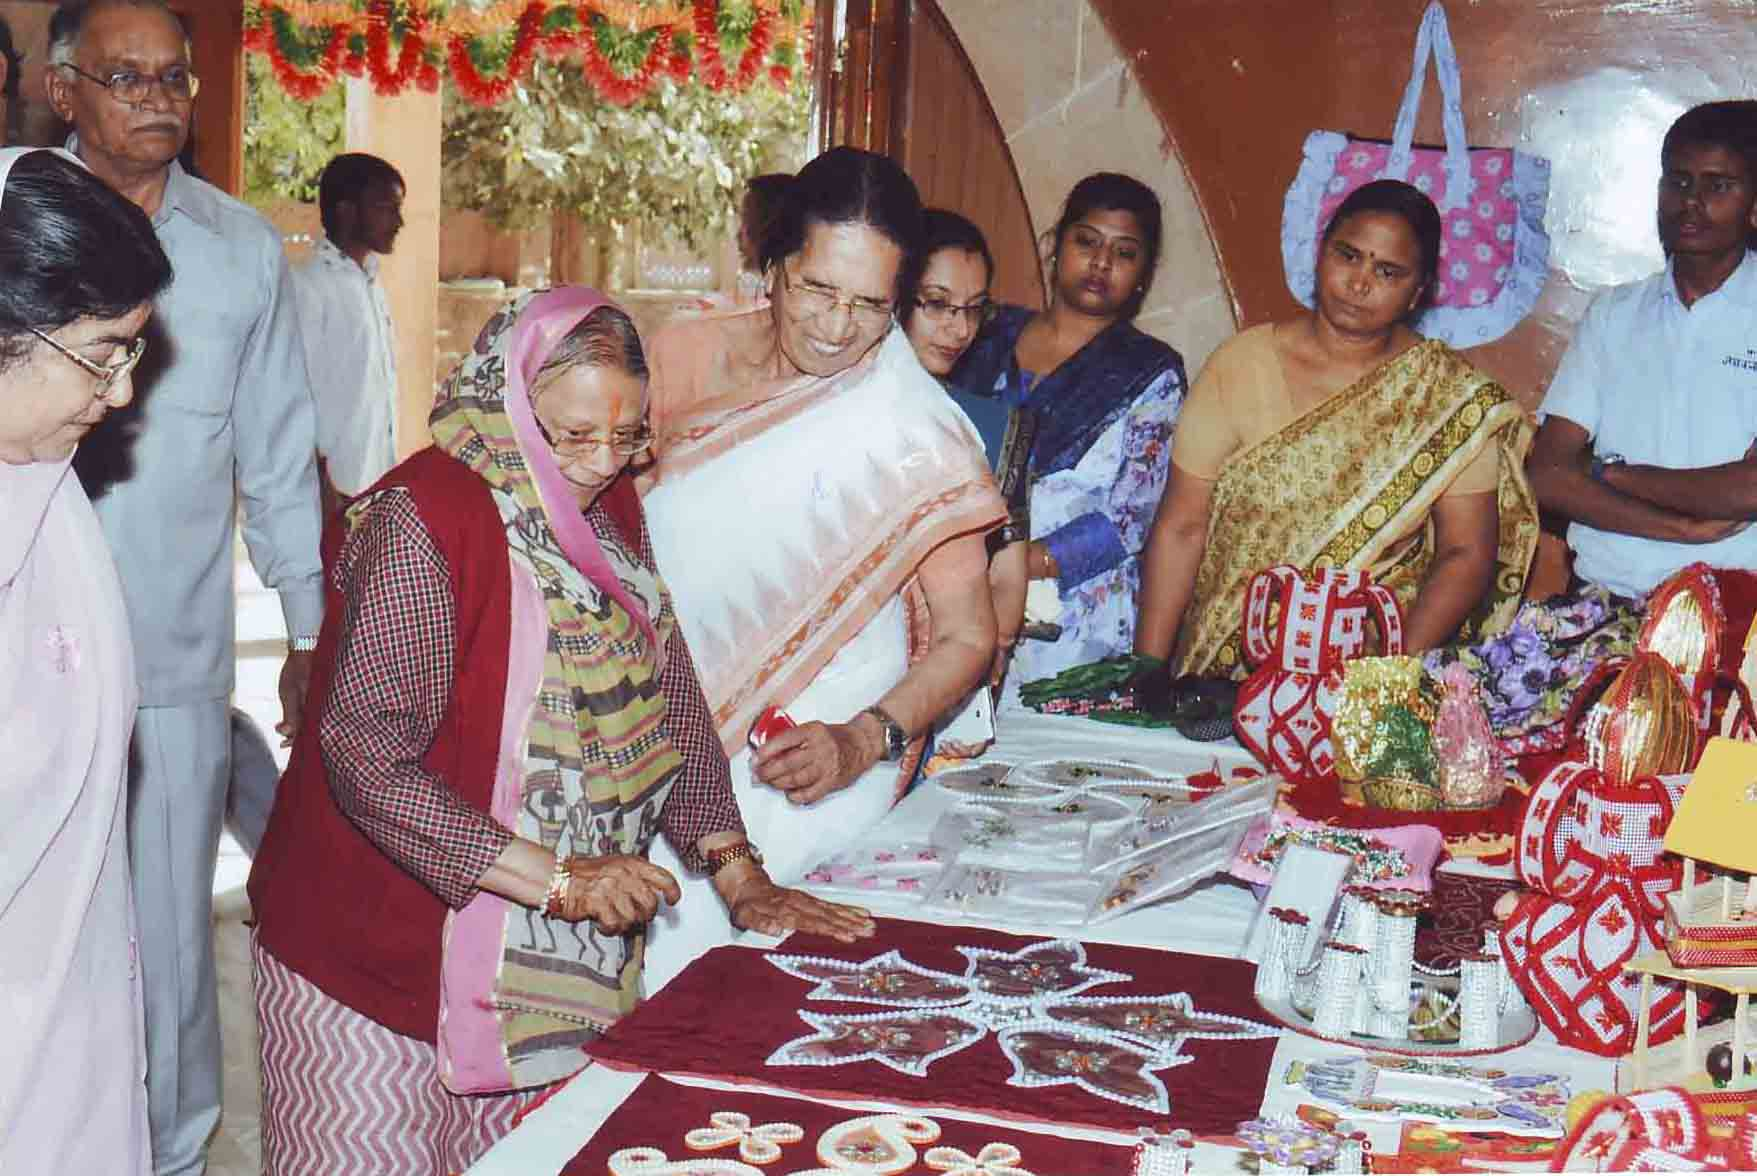 Smt. SuryaKanta Vyas, Smt Sushila Bohra and Sarda family appriciating the Craft items made by the Deaf-Mute students of our school